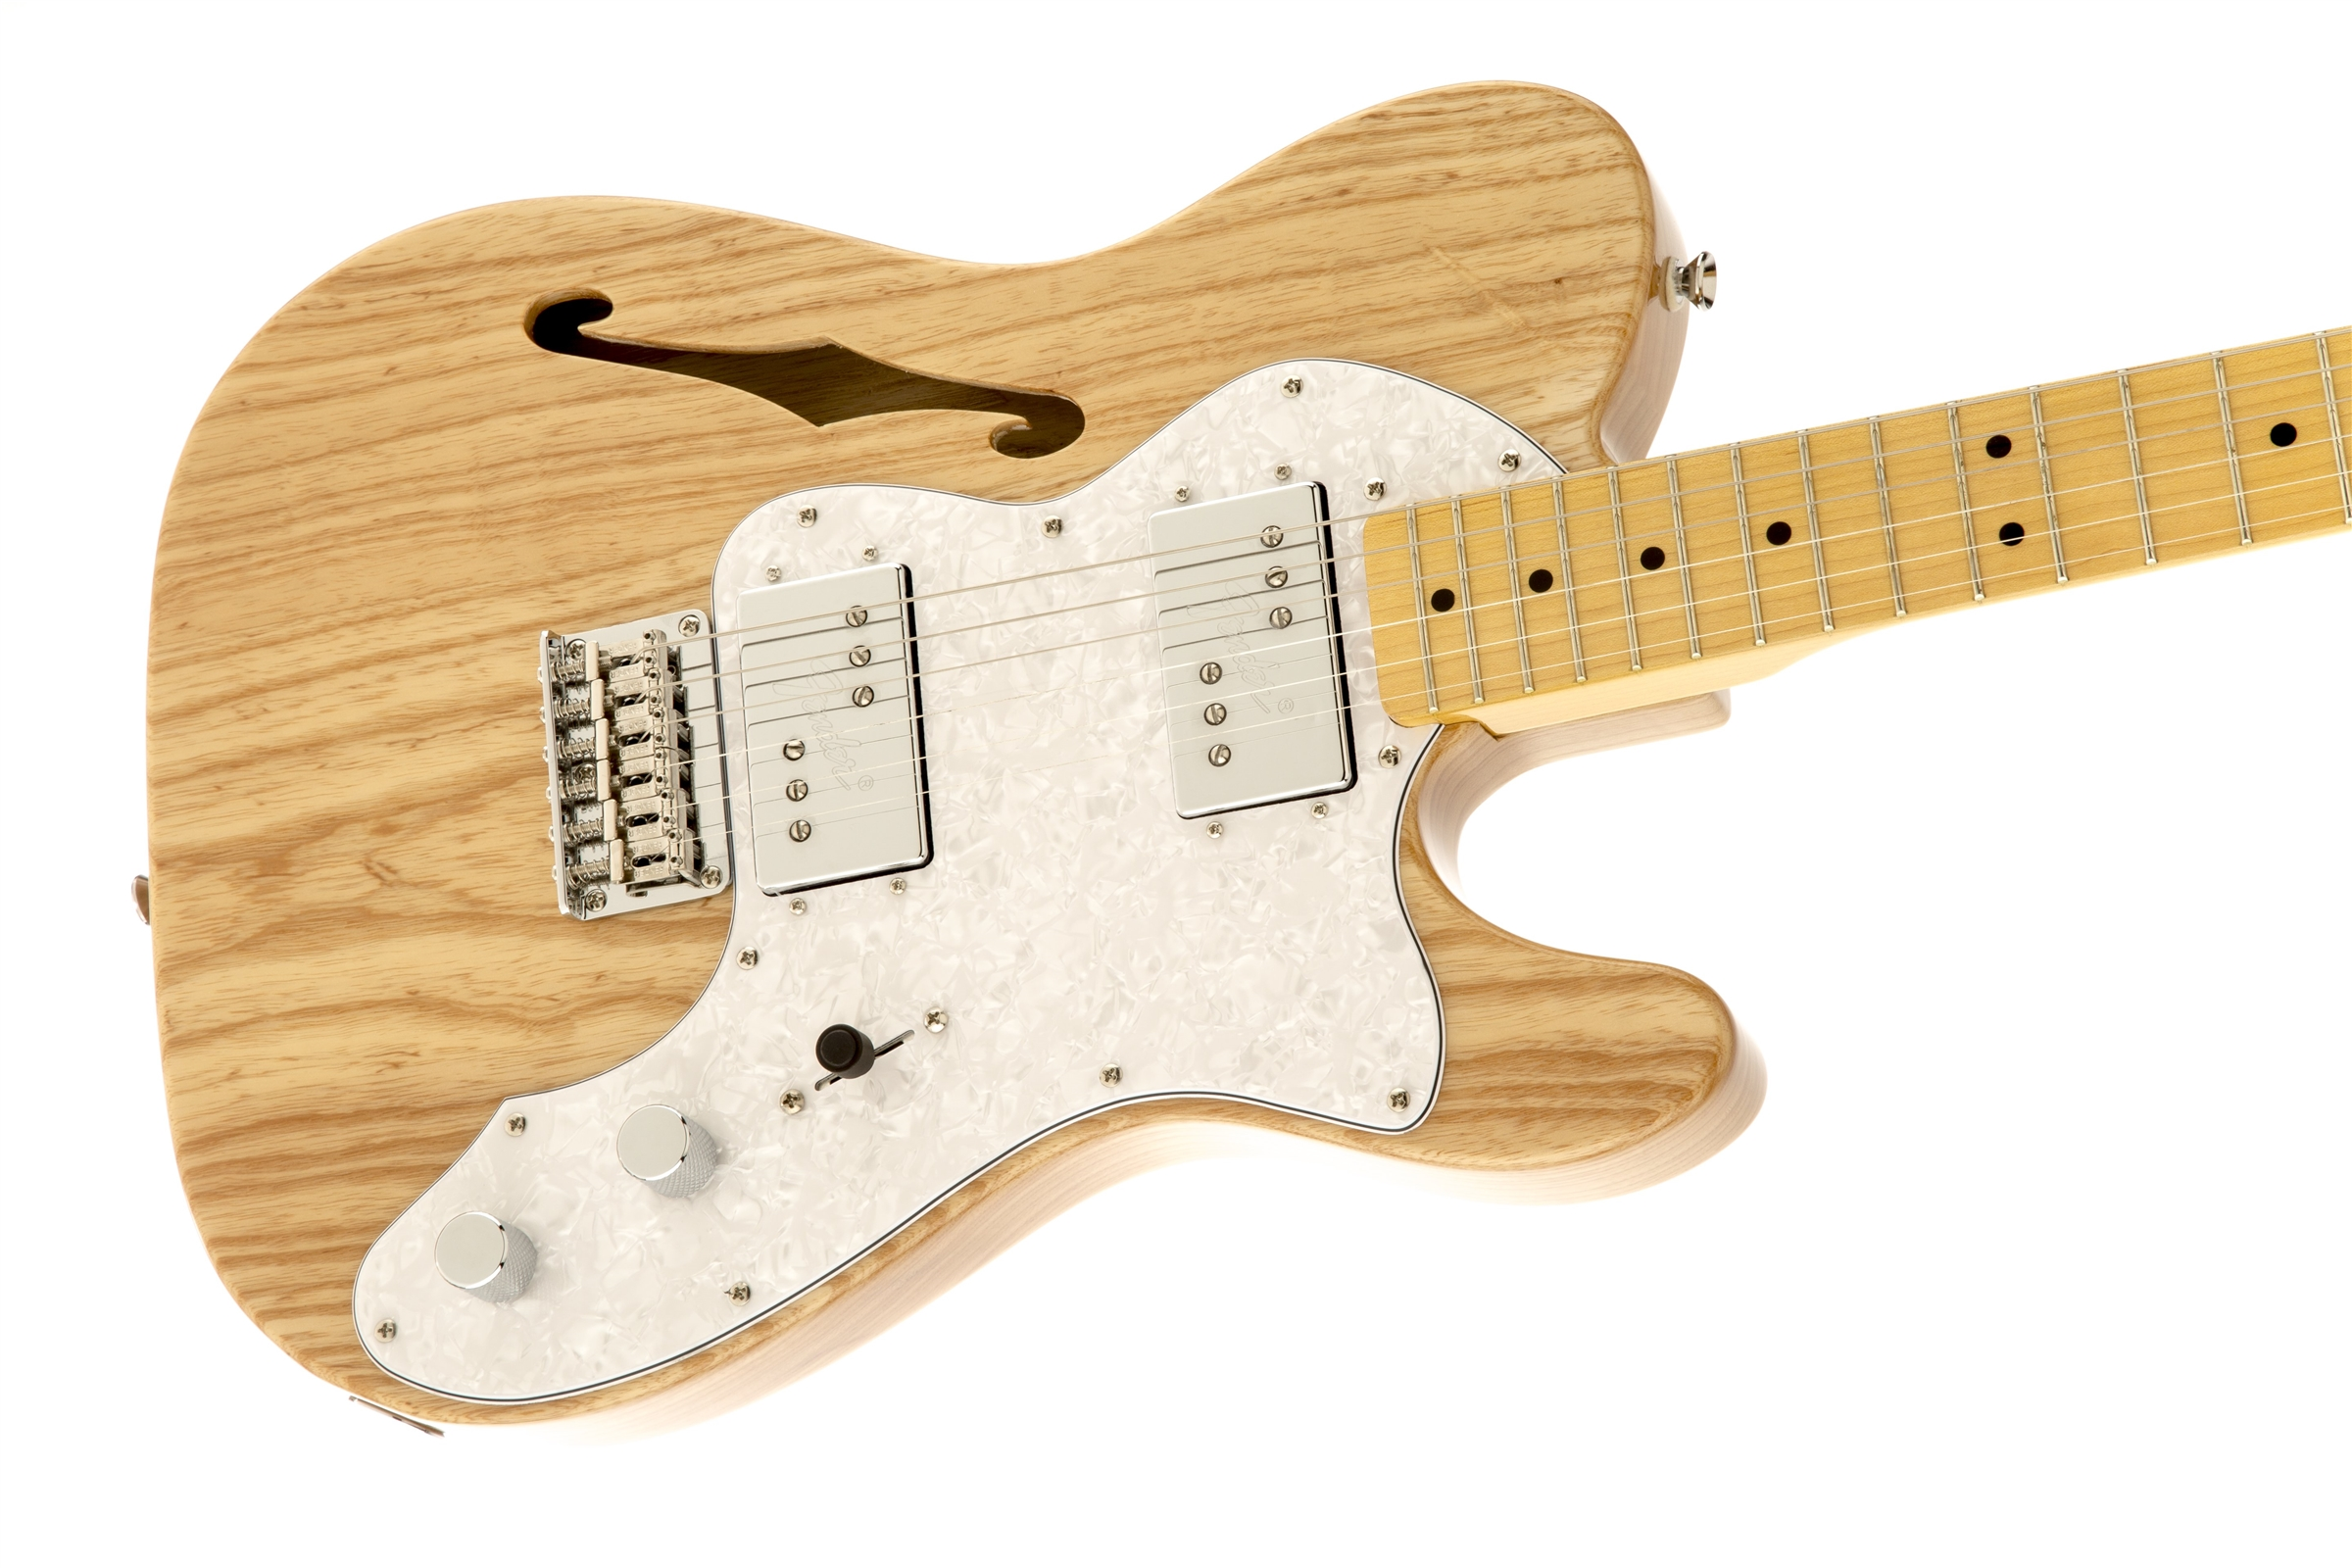 Squier 72 Thinline Wiring Diagram Free For You Bass On Strat Collection Fender Tele Reissue Vintage Guitar To